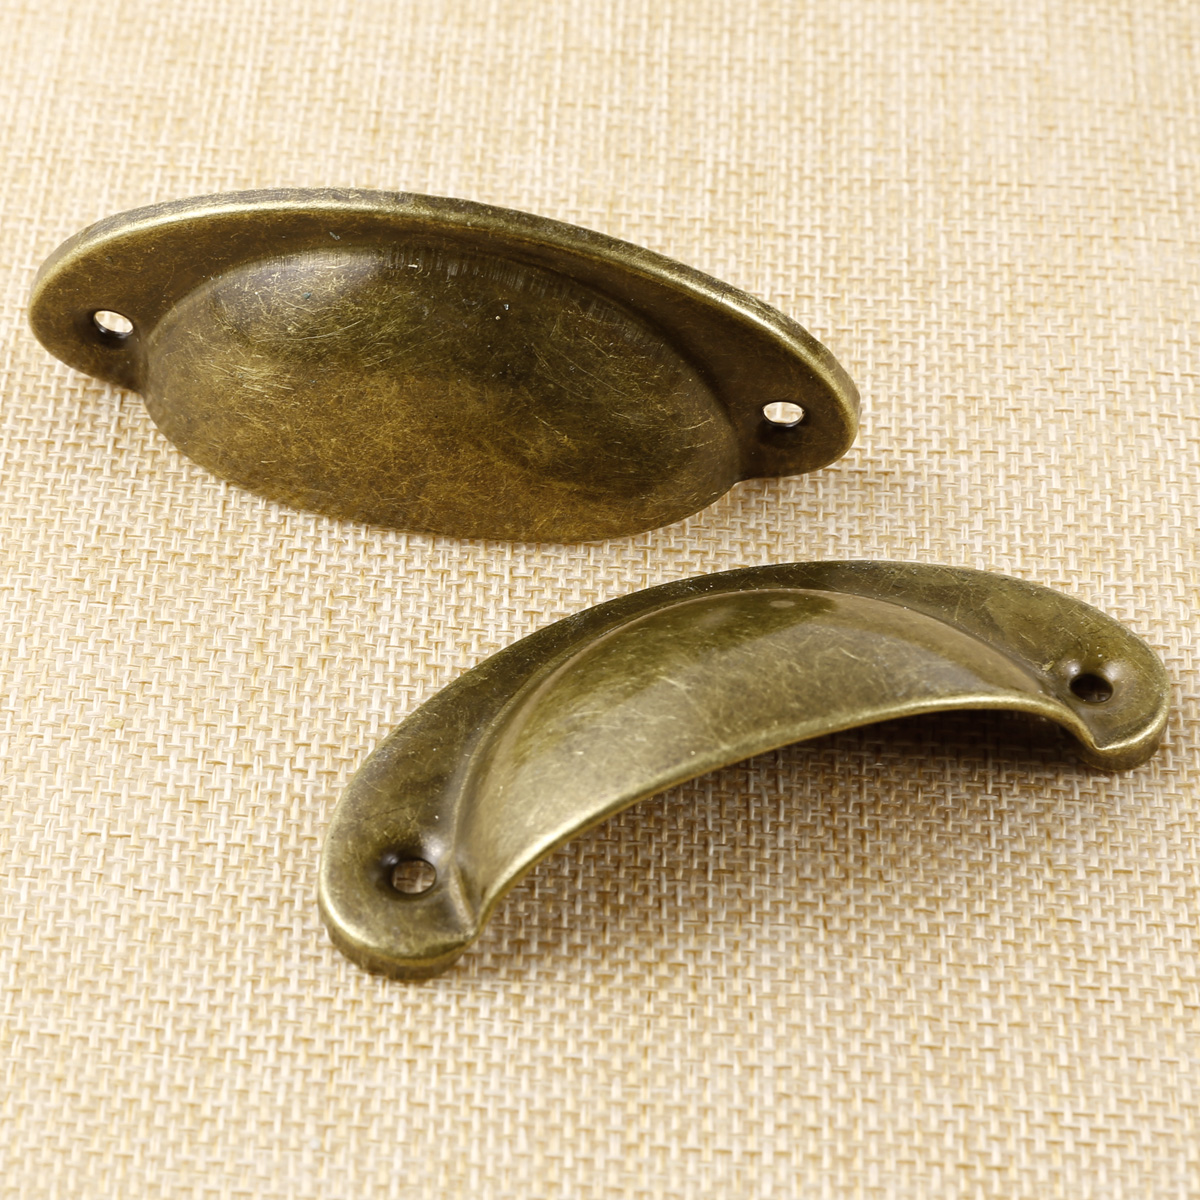 Solid brass CUP CUPPED SHELL DRAWER CUPBOARD CABINET DOOR PULL HANDLES